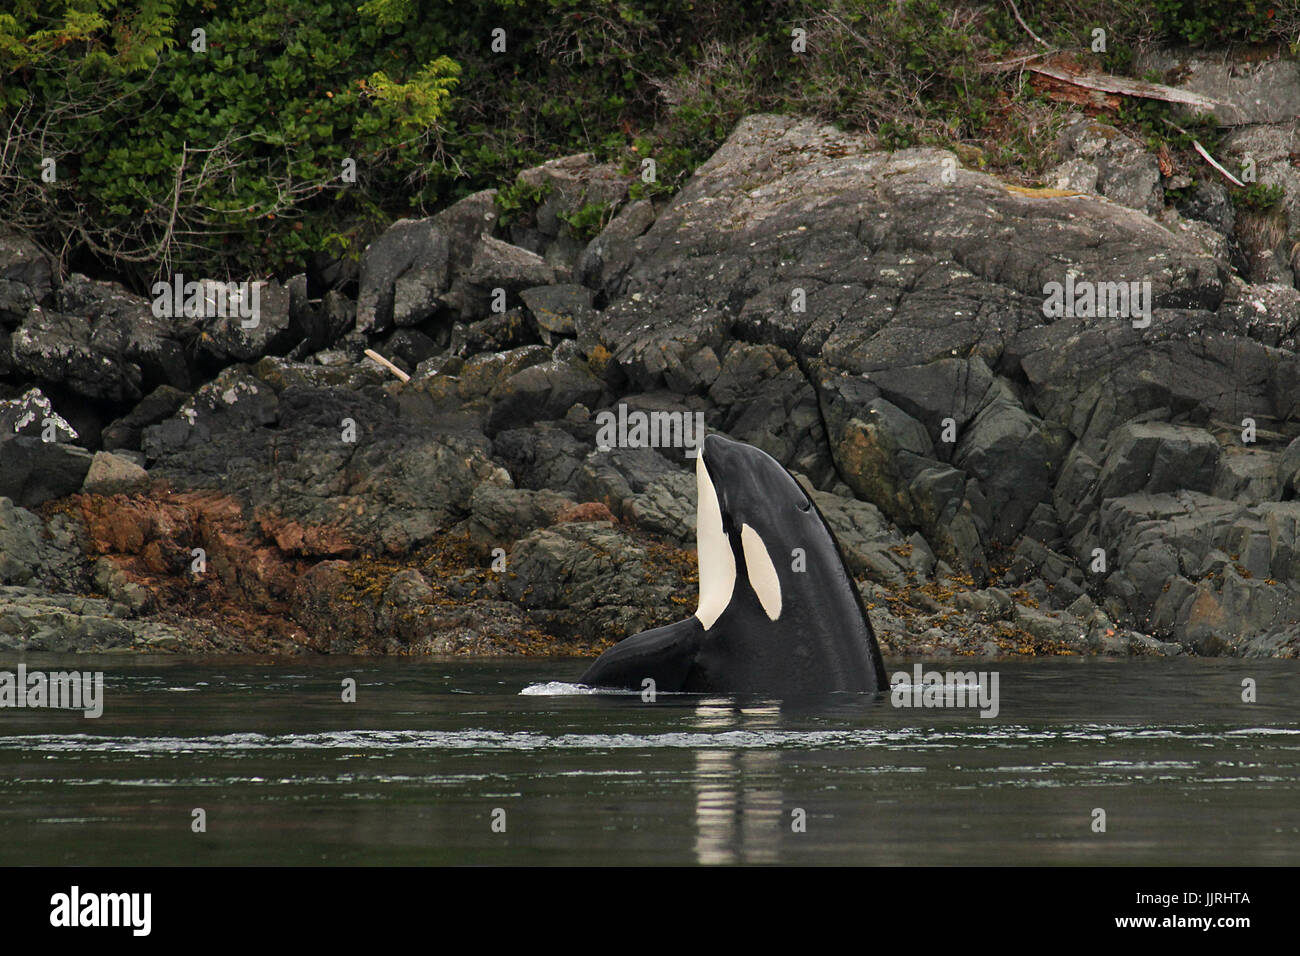 Northern resident orca whale spyhopping - Stock Image